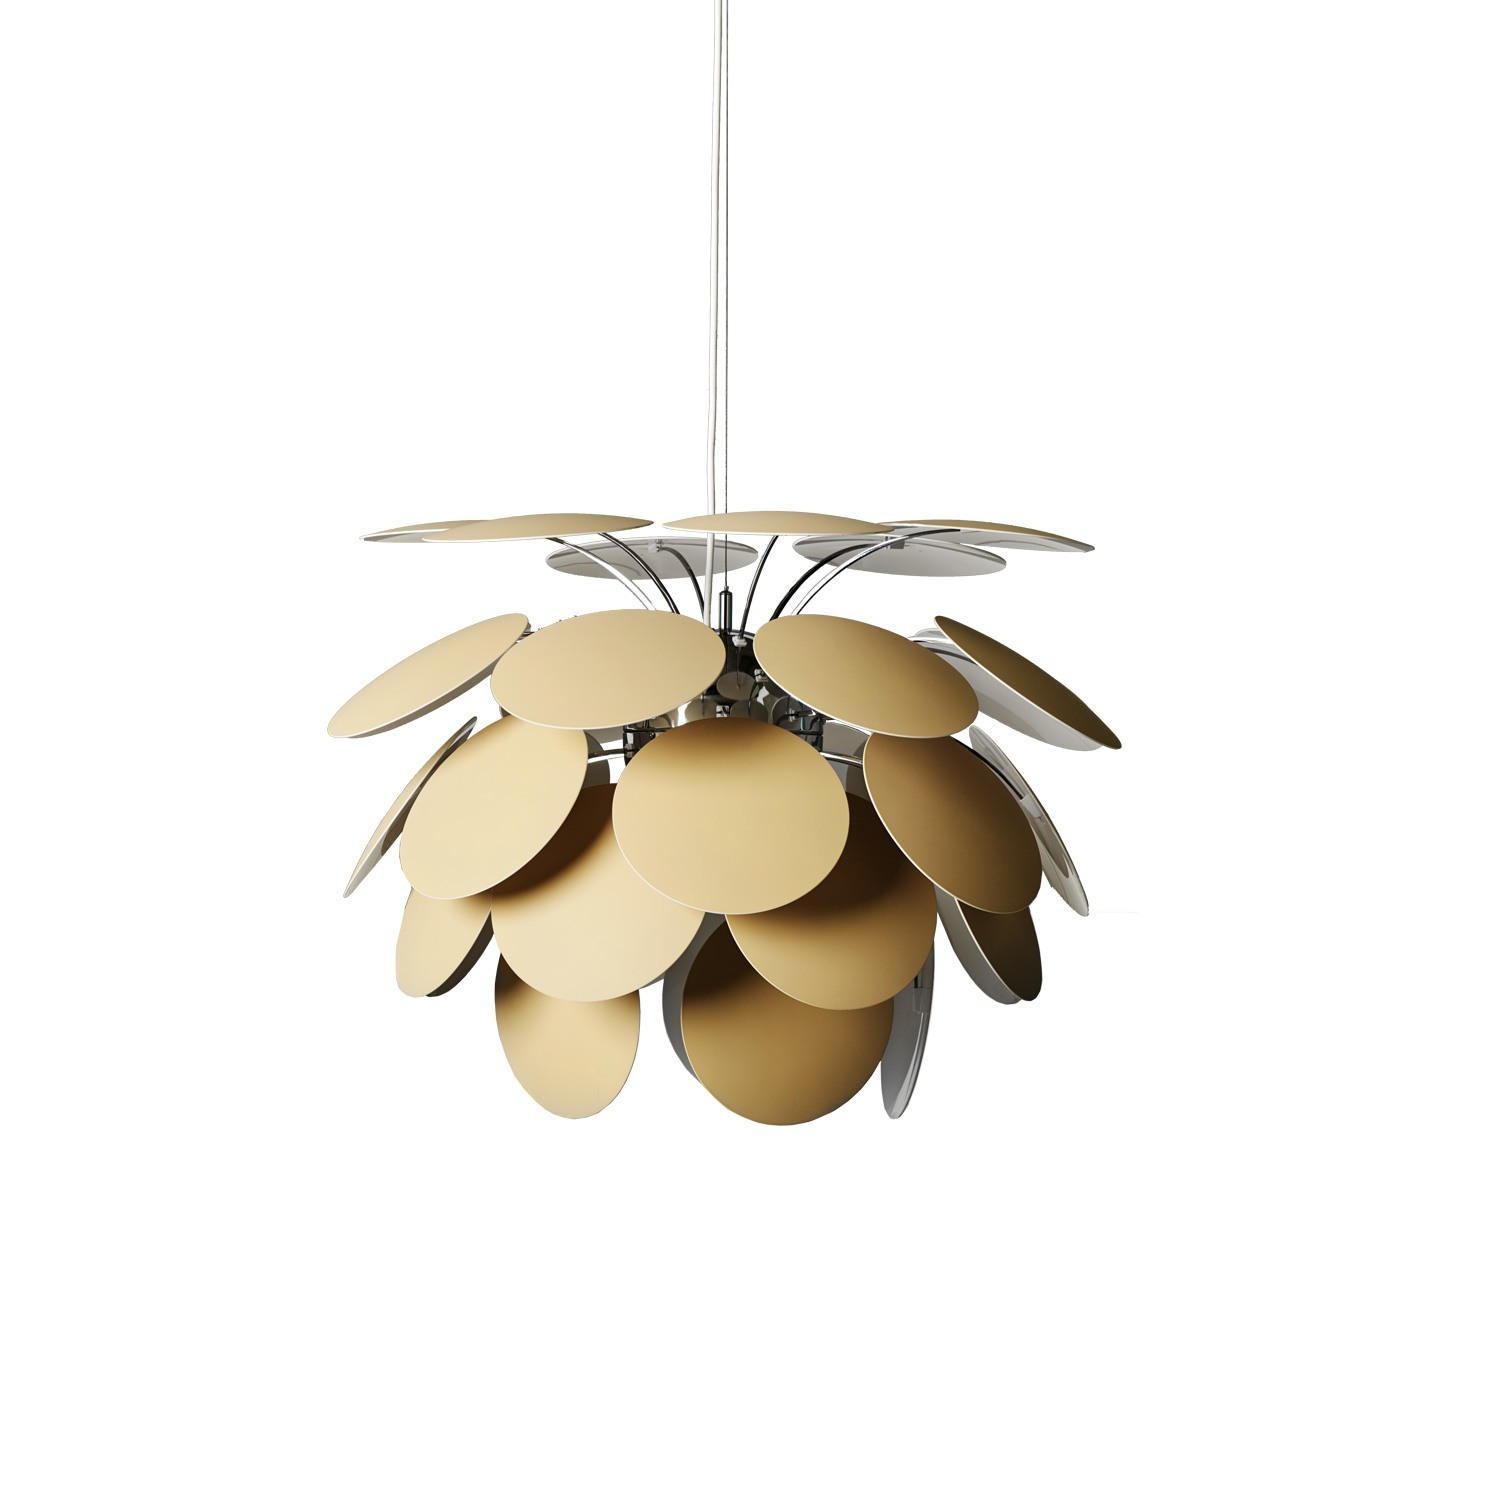 discoco 132 impressive giant pendant light lampefeber. Black Bedroom Furniture Sets. Home Design Ideas